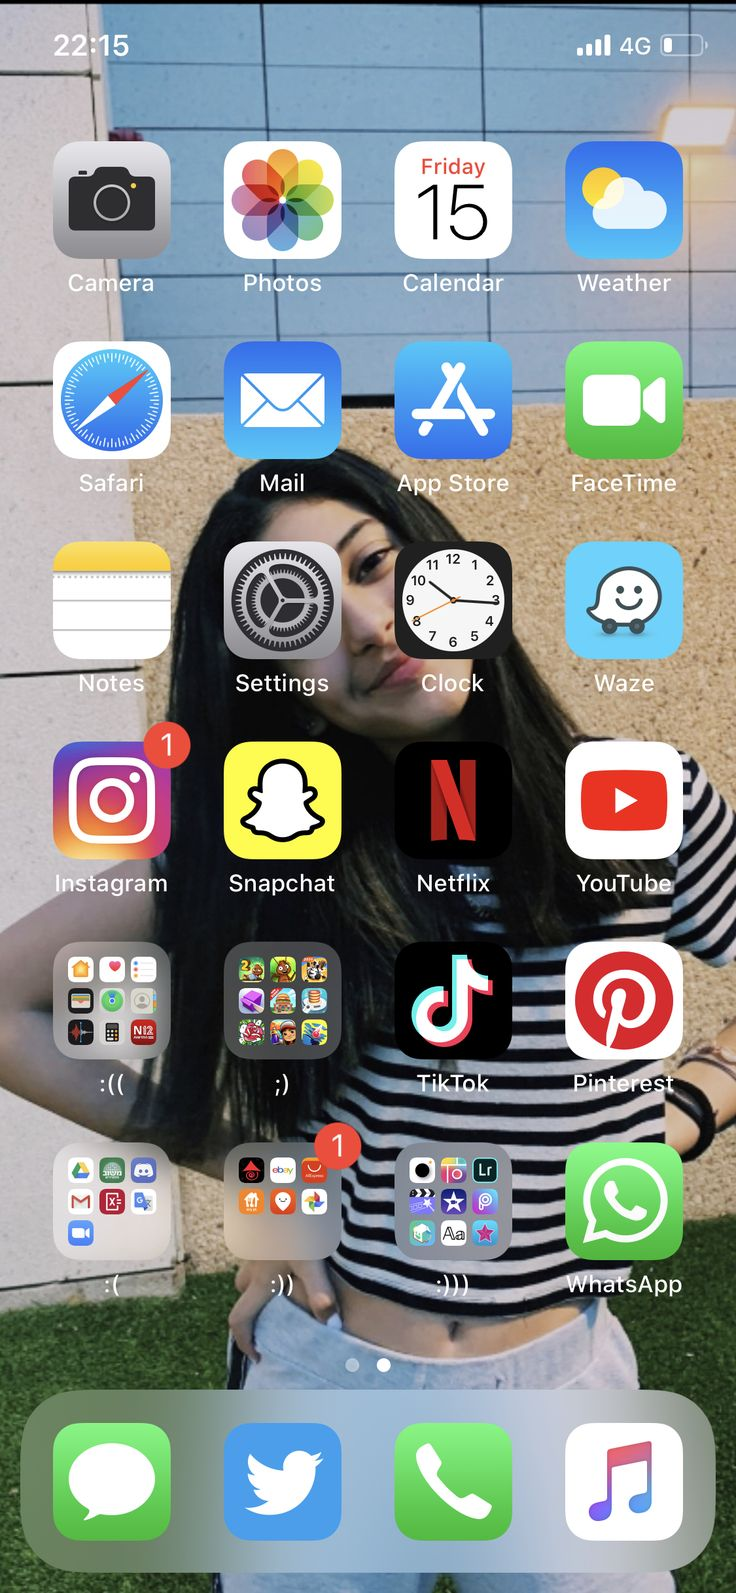 Aesthetic iPhone organization home screen 💋 in 2020